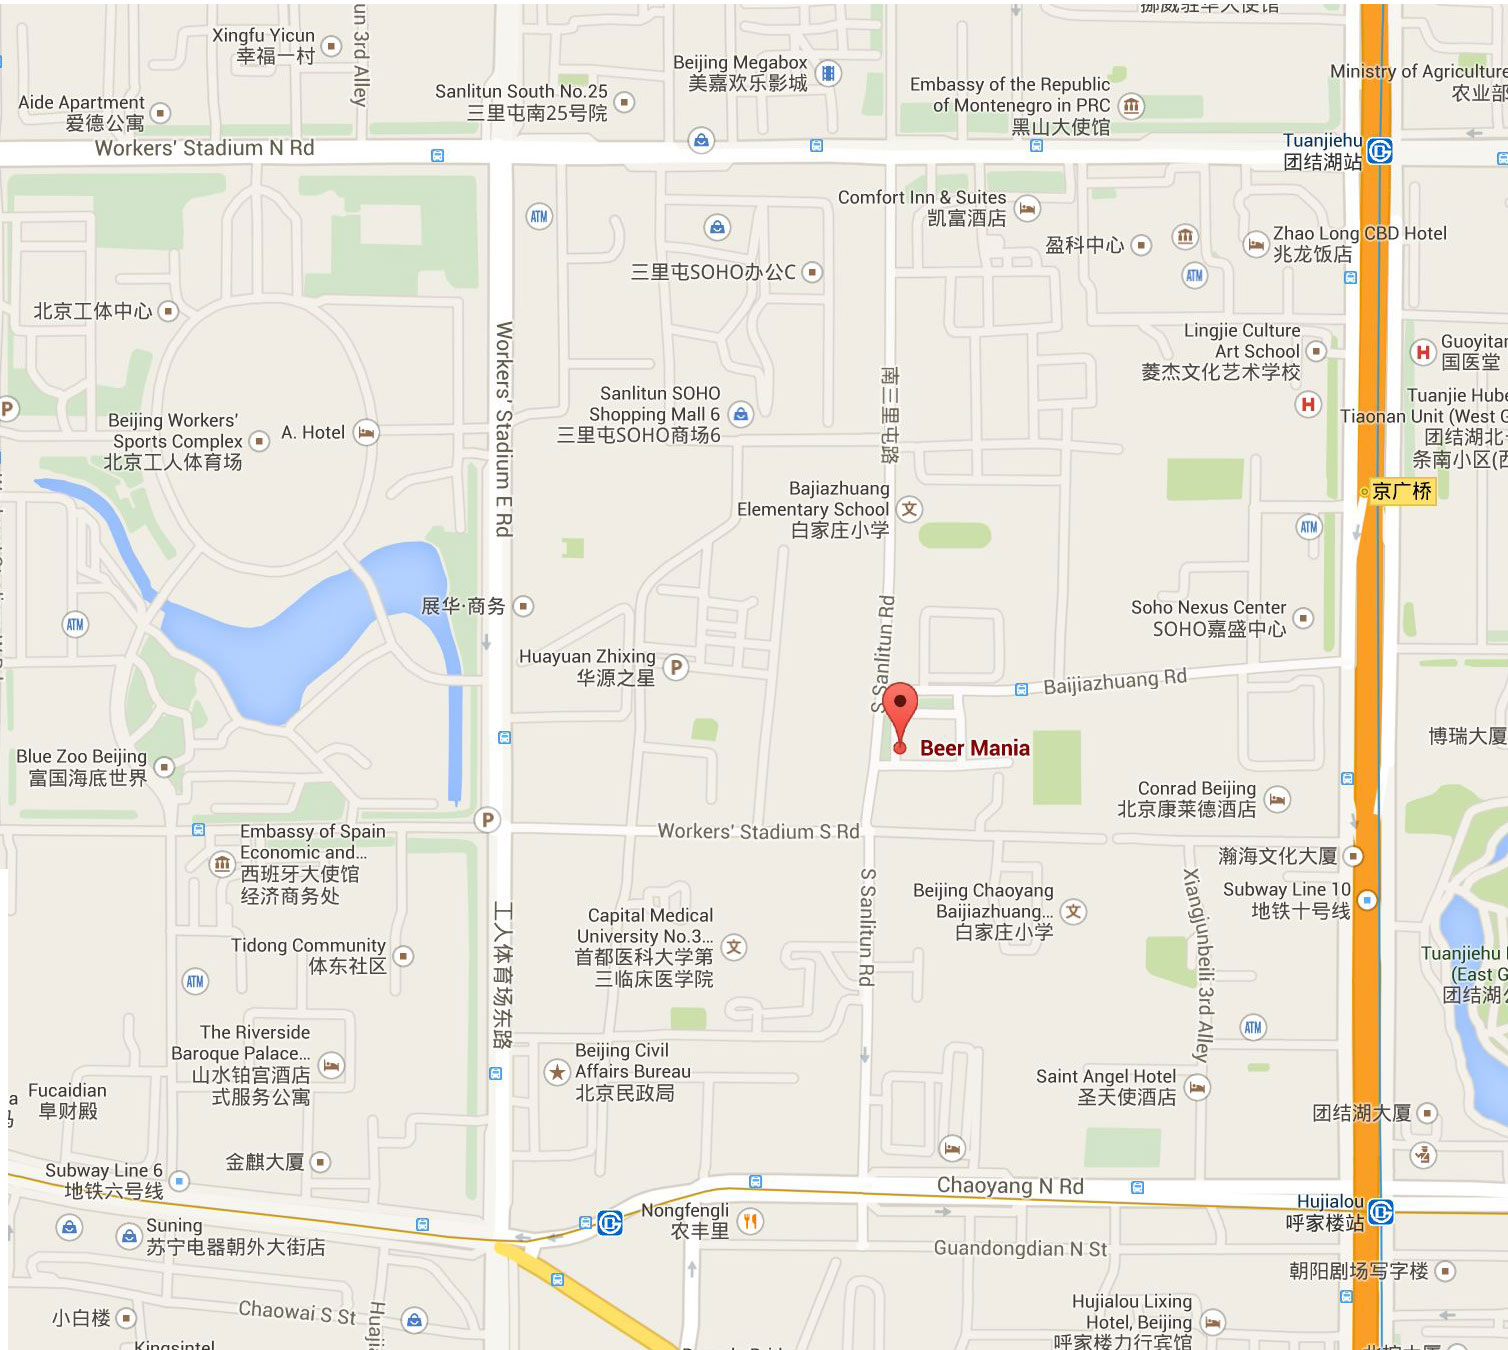 Beer Mania, Taiyue Suites 1F, West Gate, 16 Sanlitun South Street.  欧月啤酒吧, 泰悦豪庭1层,西门, 三里屯南路16号